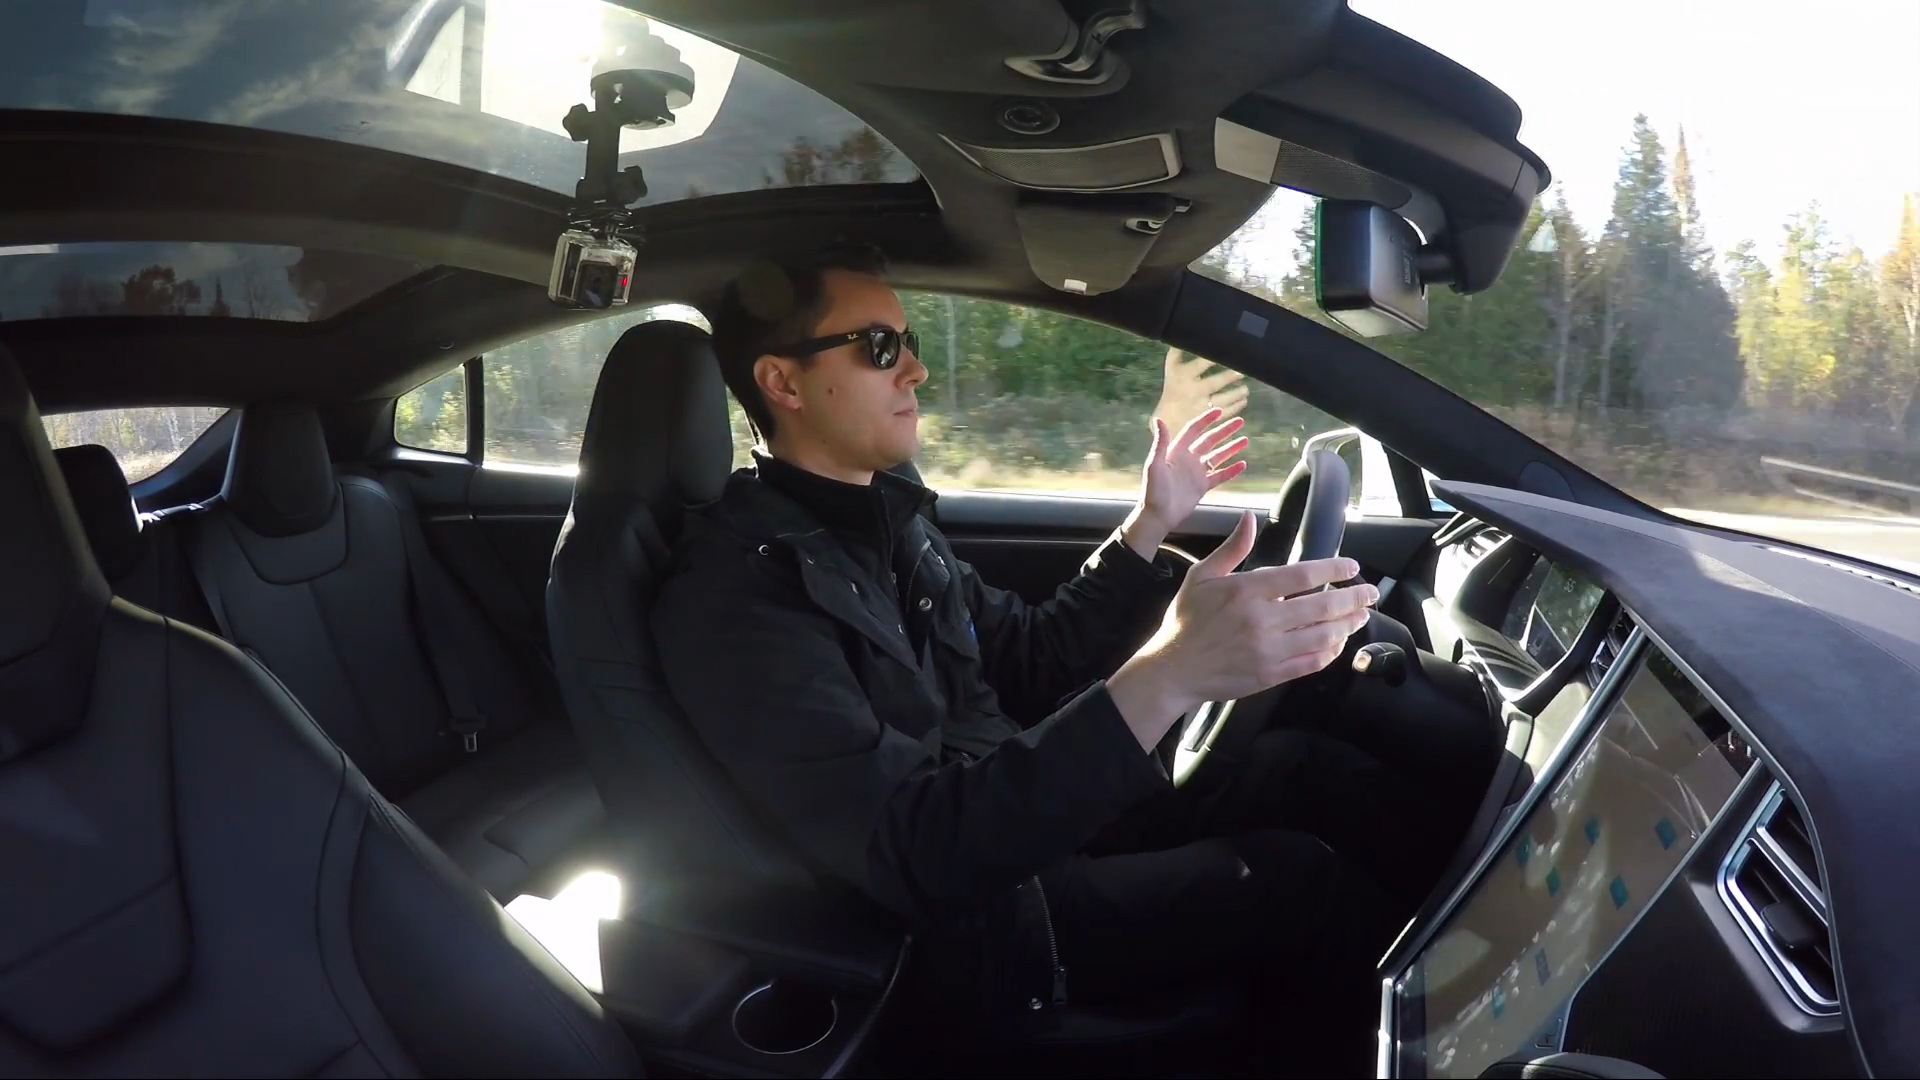 Tesla owners now have an even more obsessive companion app ...